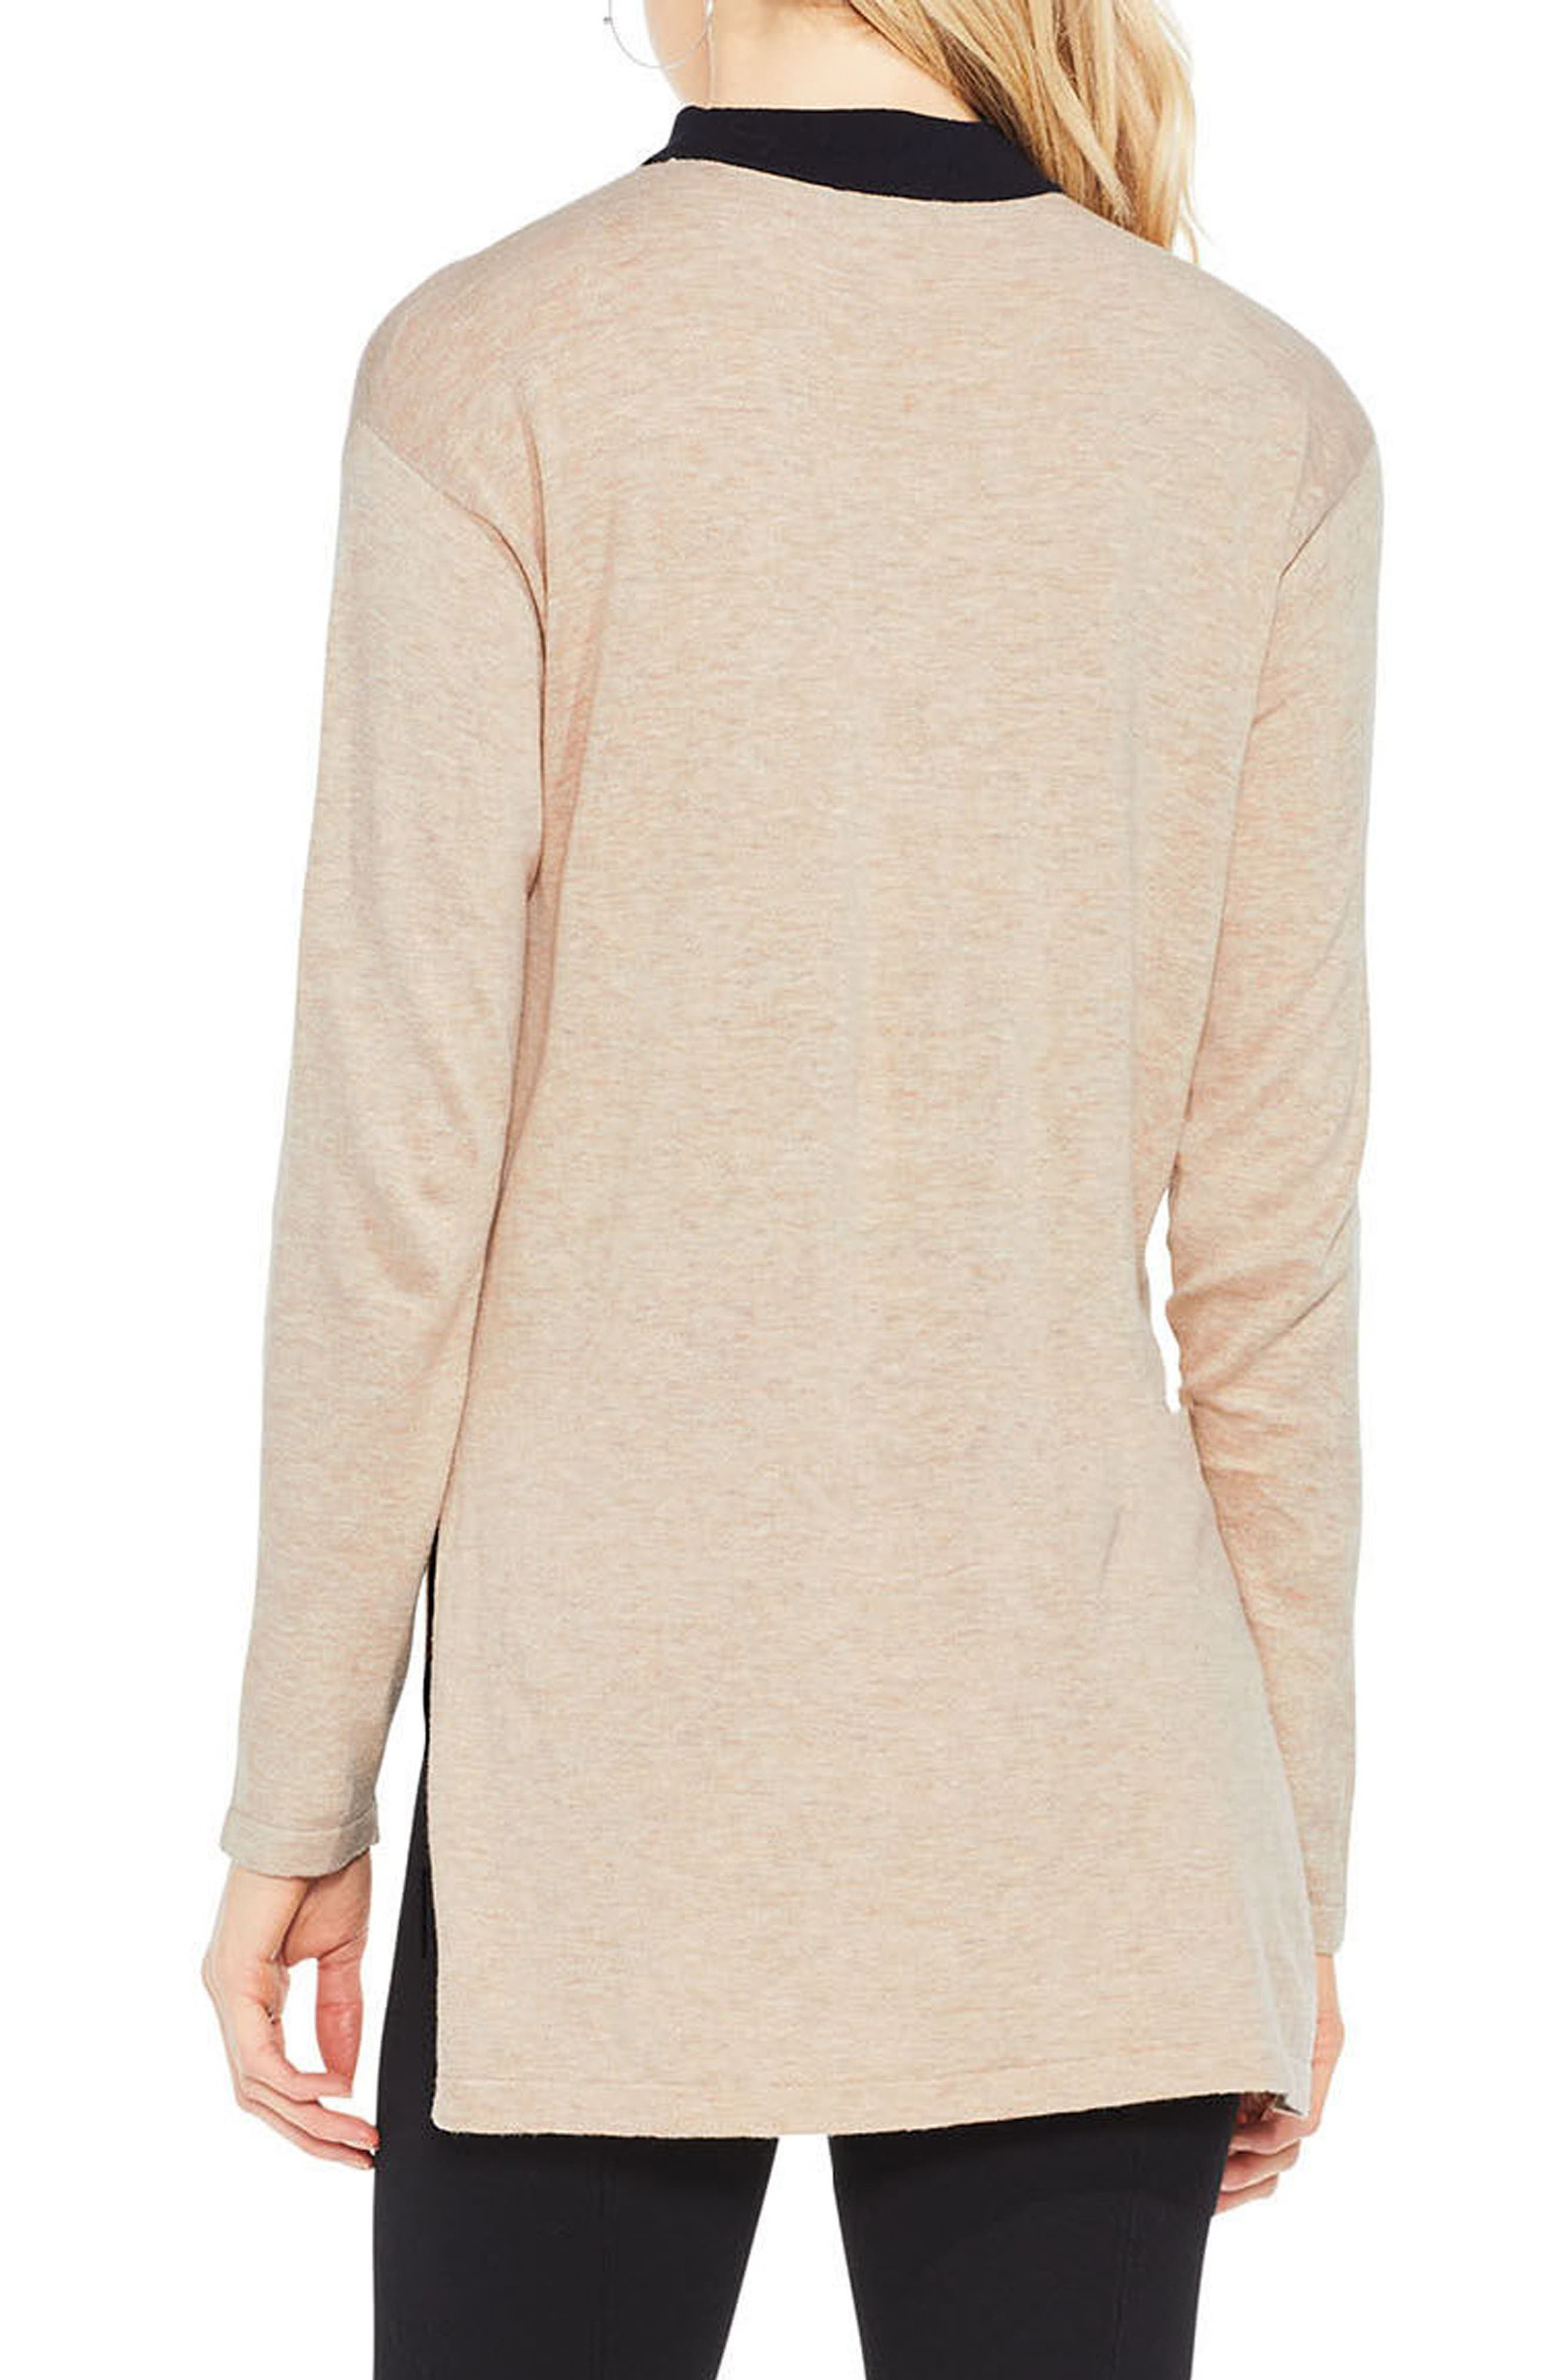 Choker V-Neck Sweater,                             Alternate thumbnail 3, color,                             Warm Camel Heather